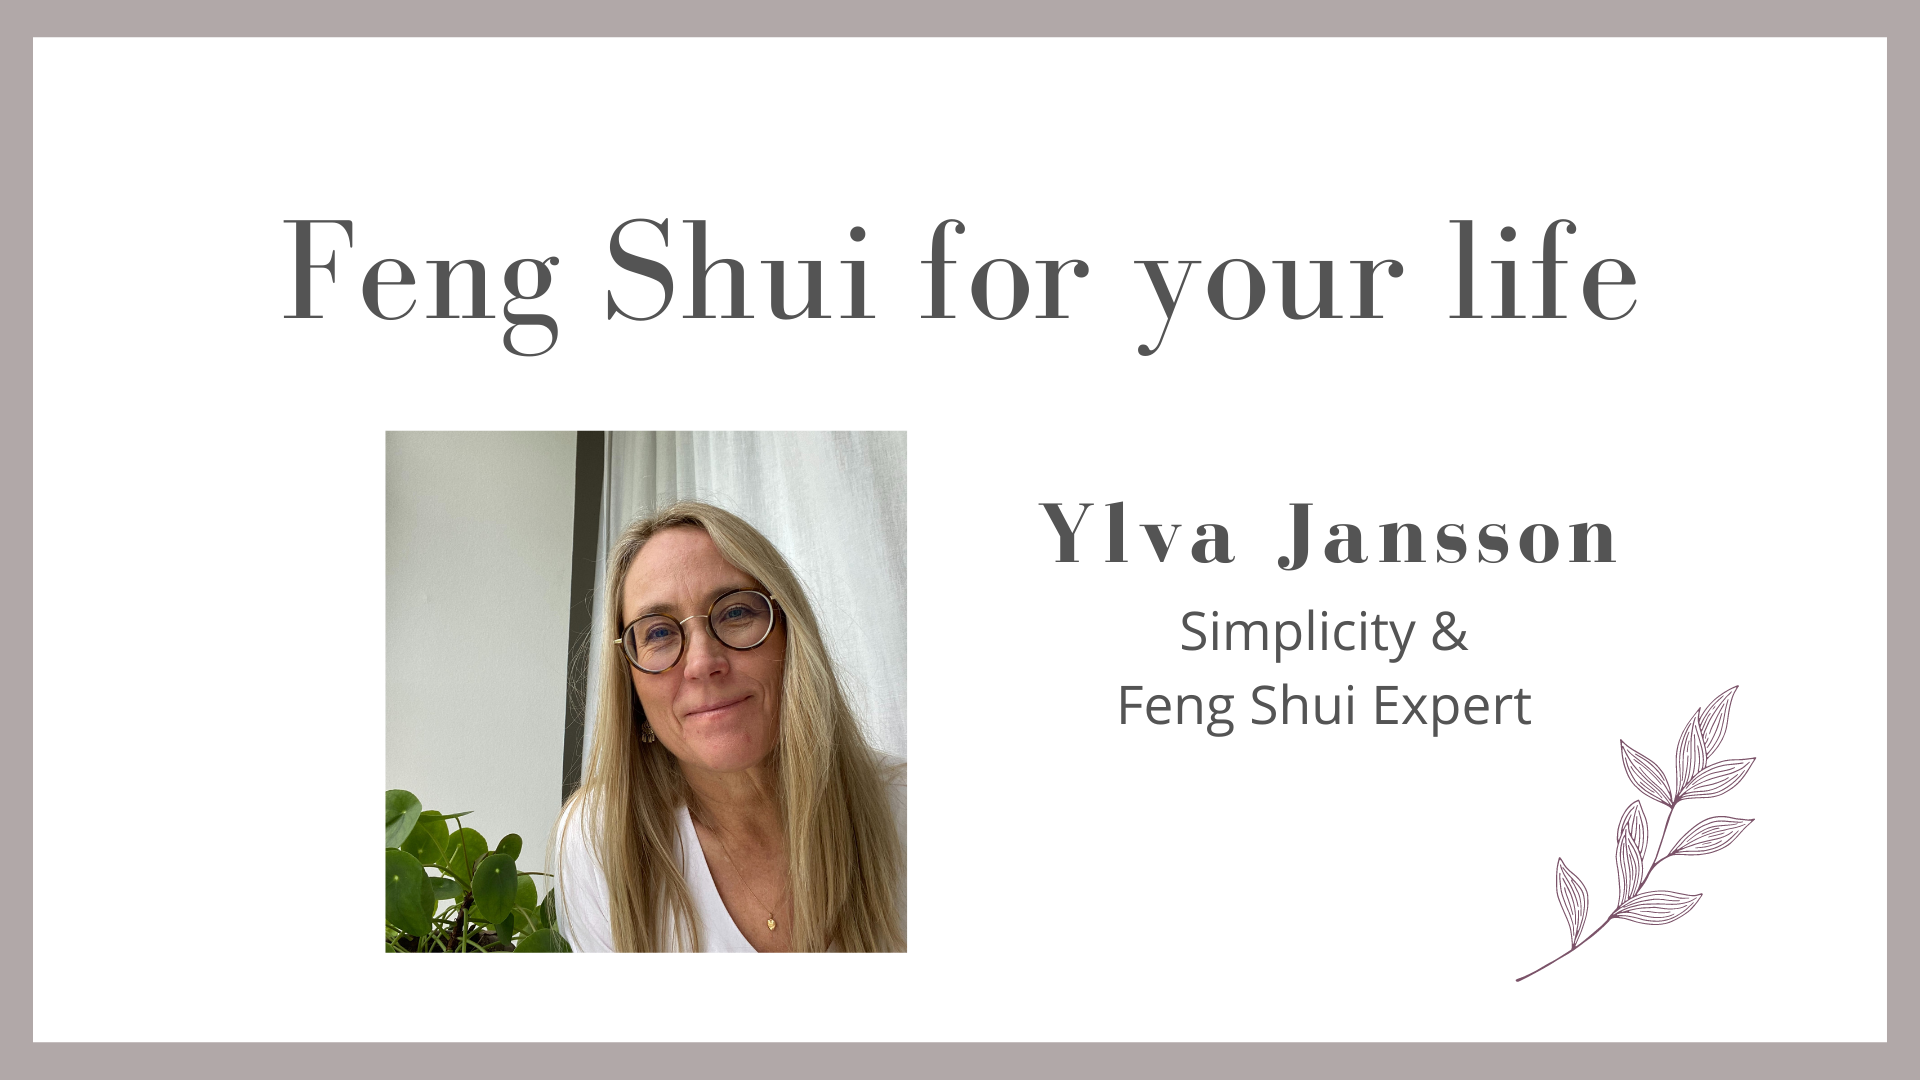 Feng Shui for your life